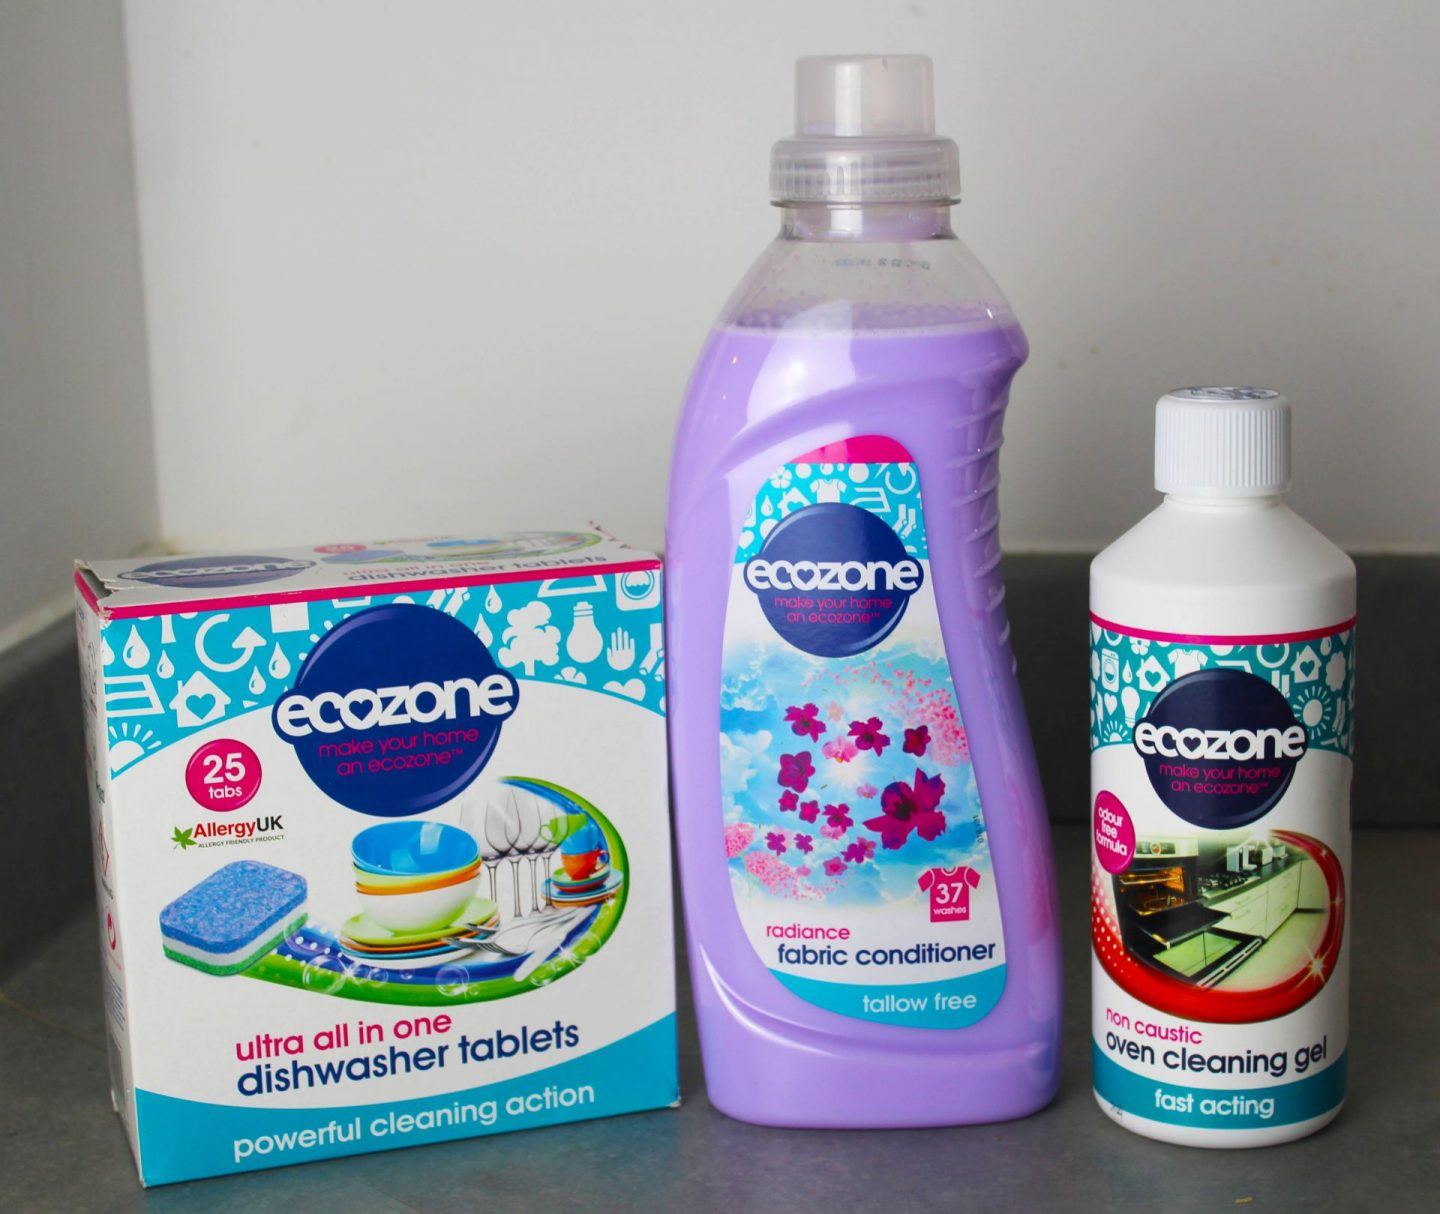 Picture of Ecozone eco-friendly cleaning products.